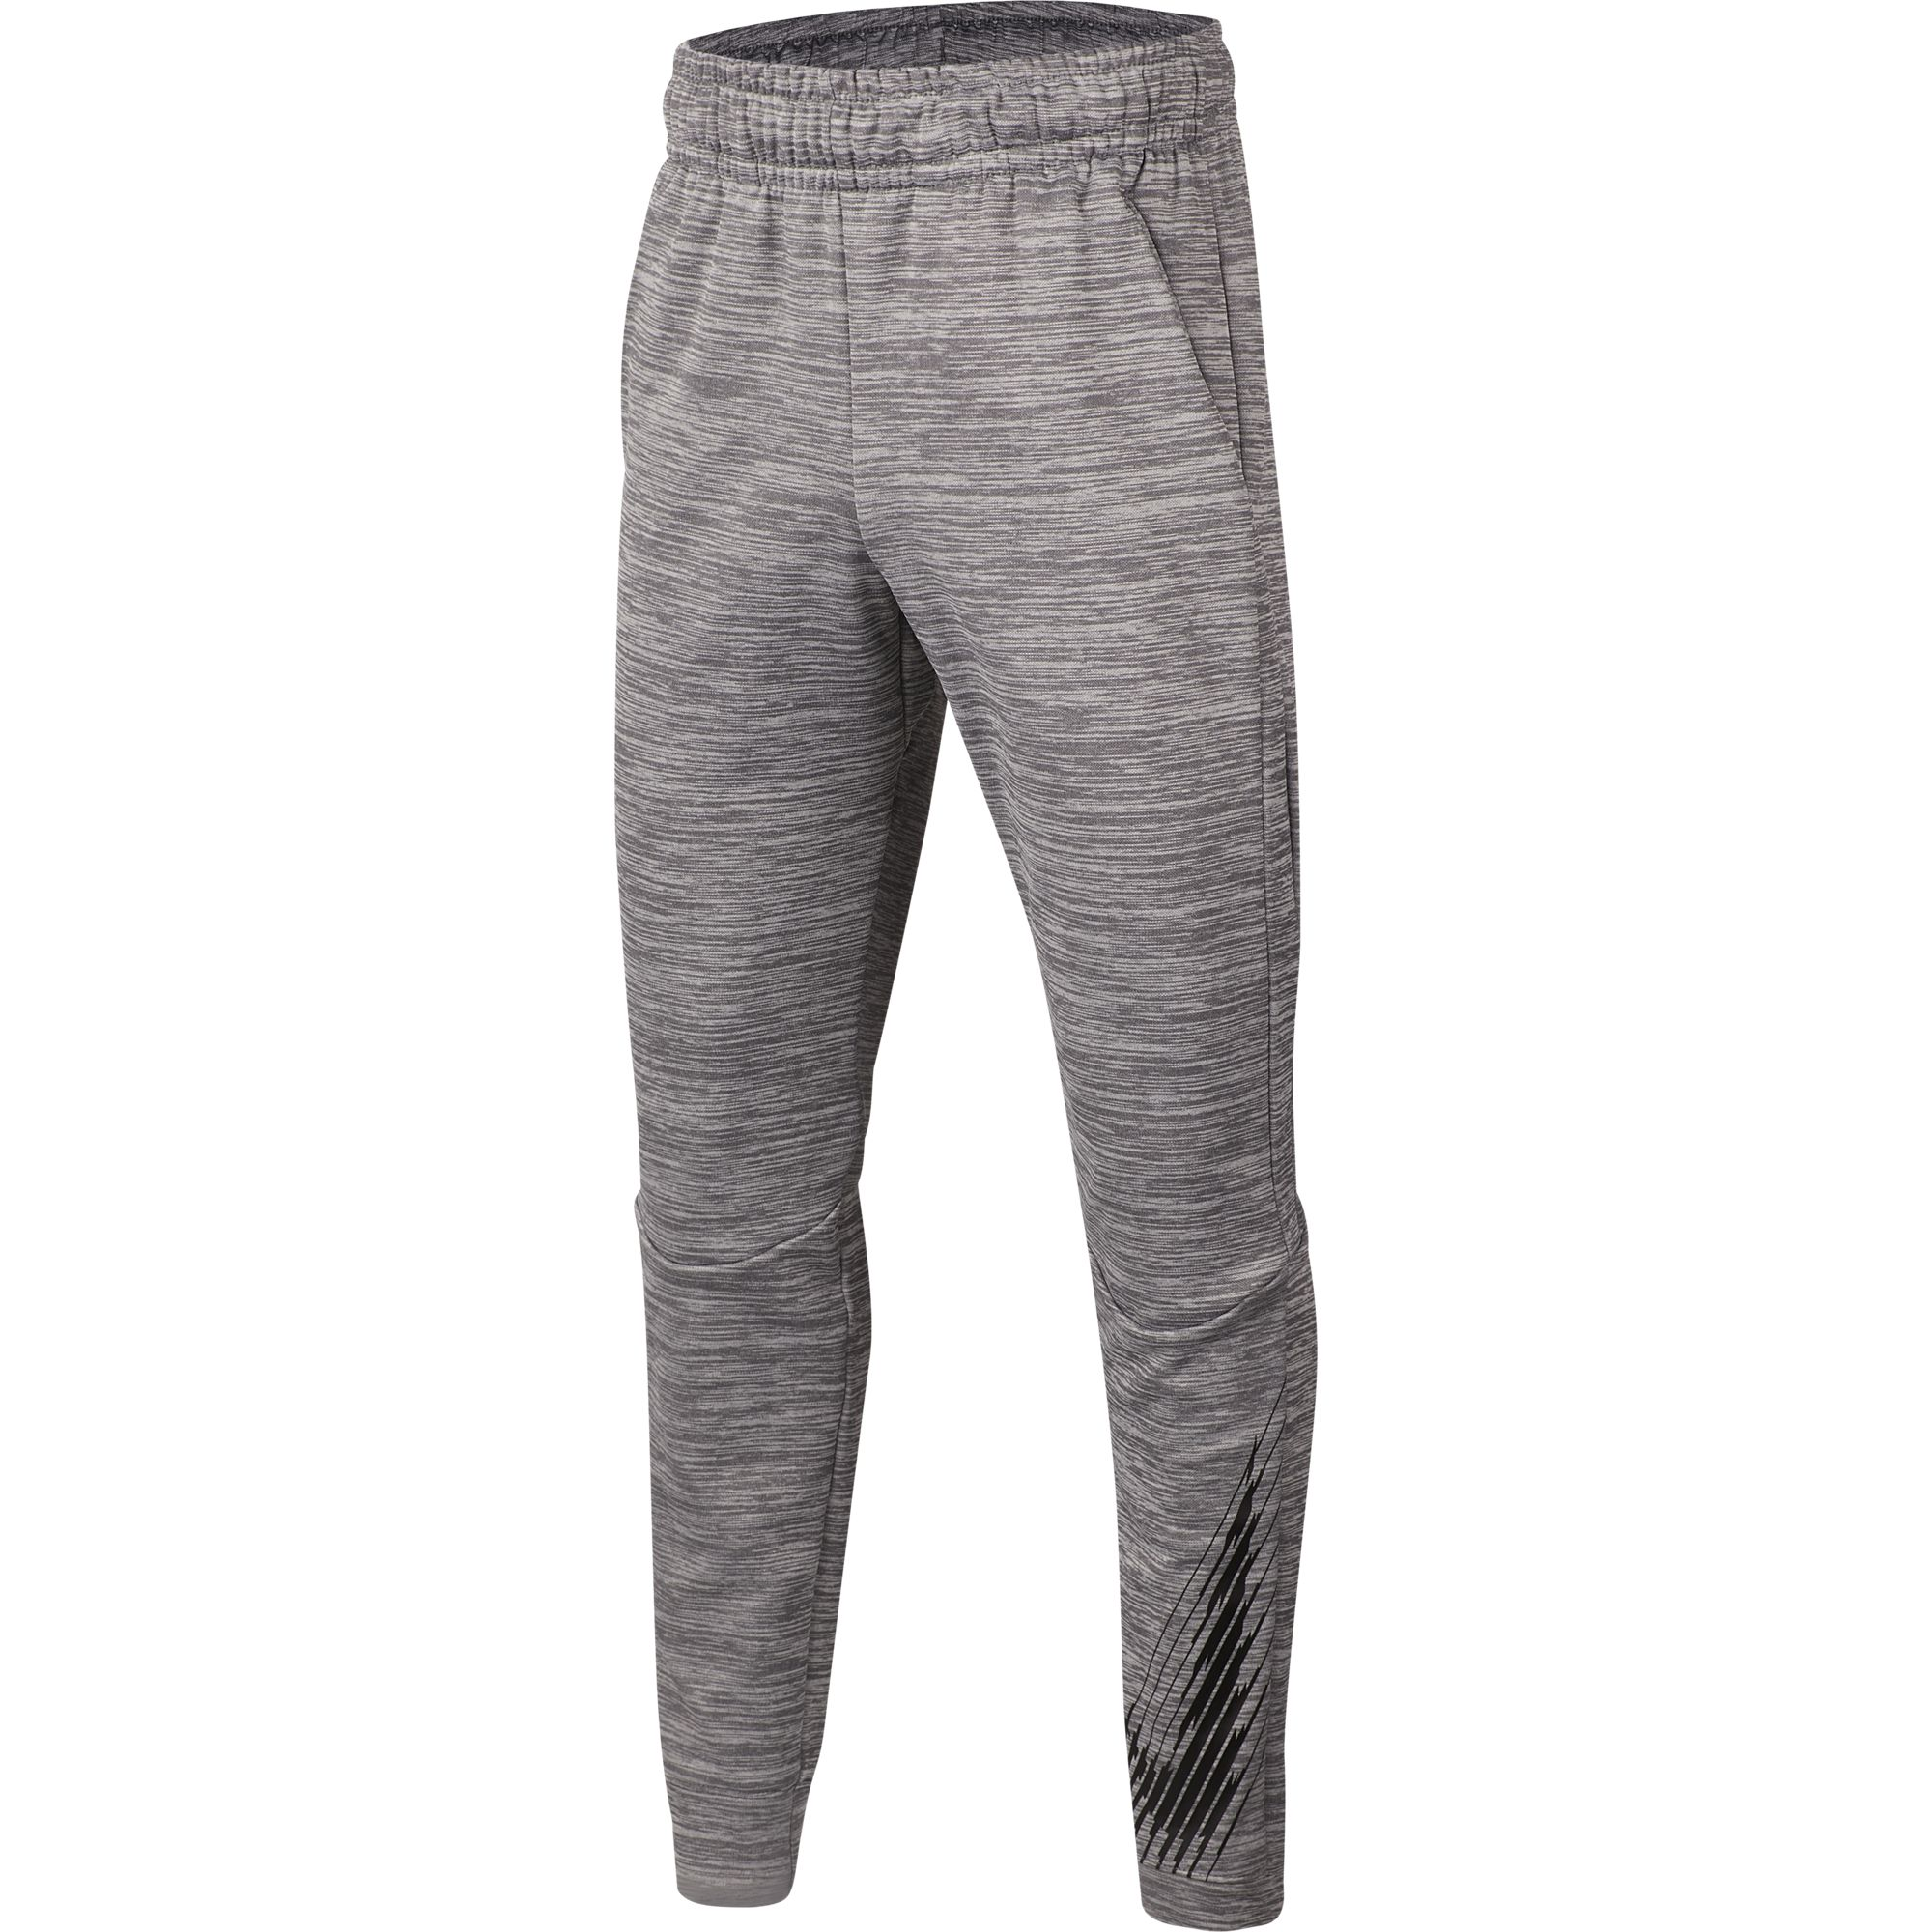 Boy's Dri-Fit Tapered Therma Fleece Pant, Charcoal,Smoke,Steel, swatch